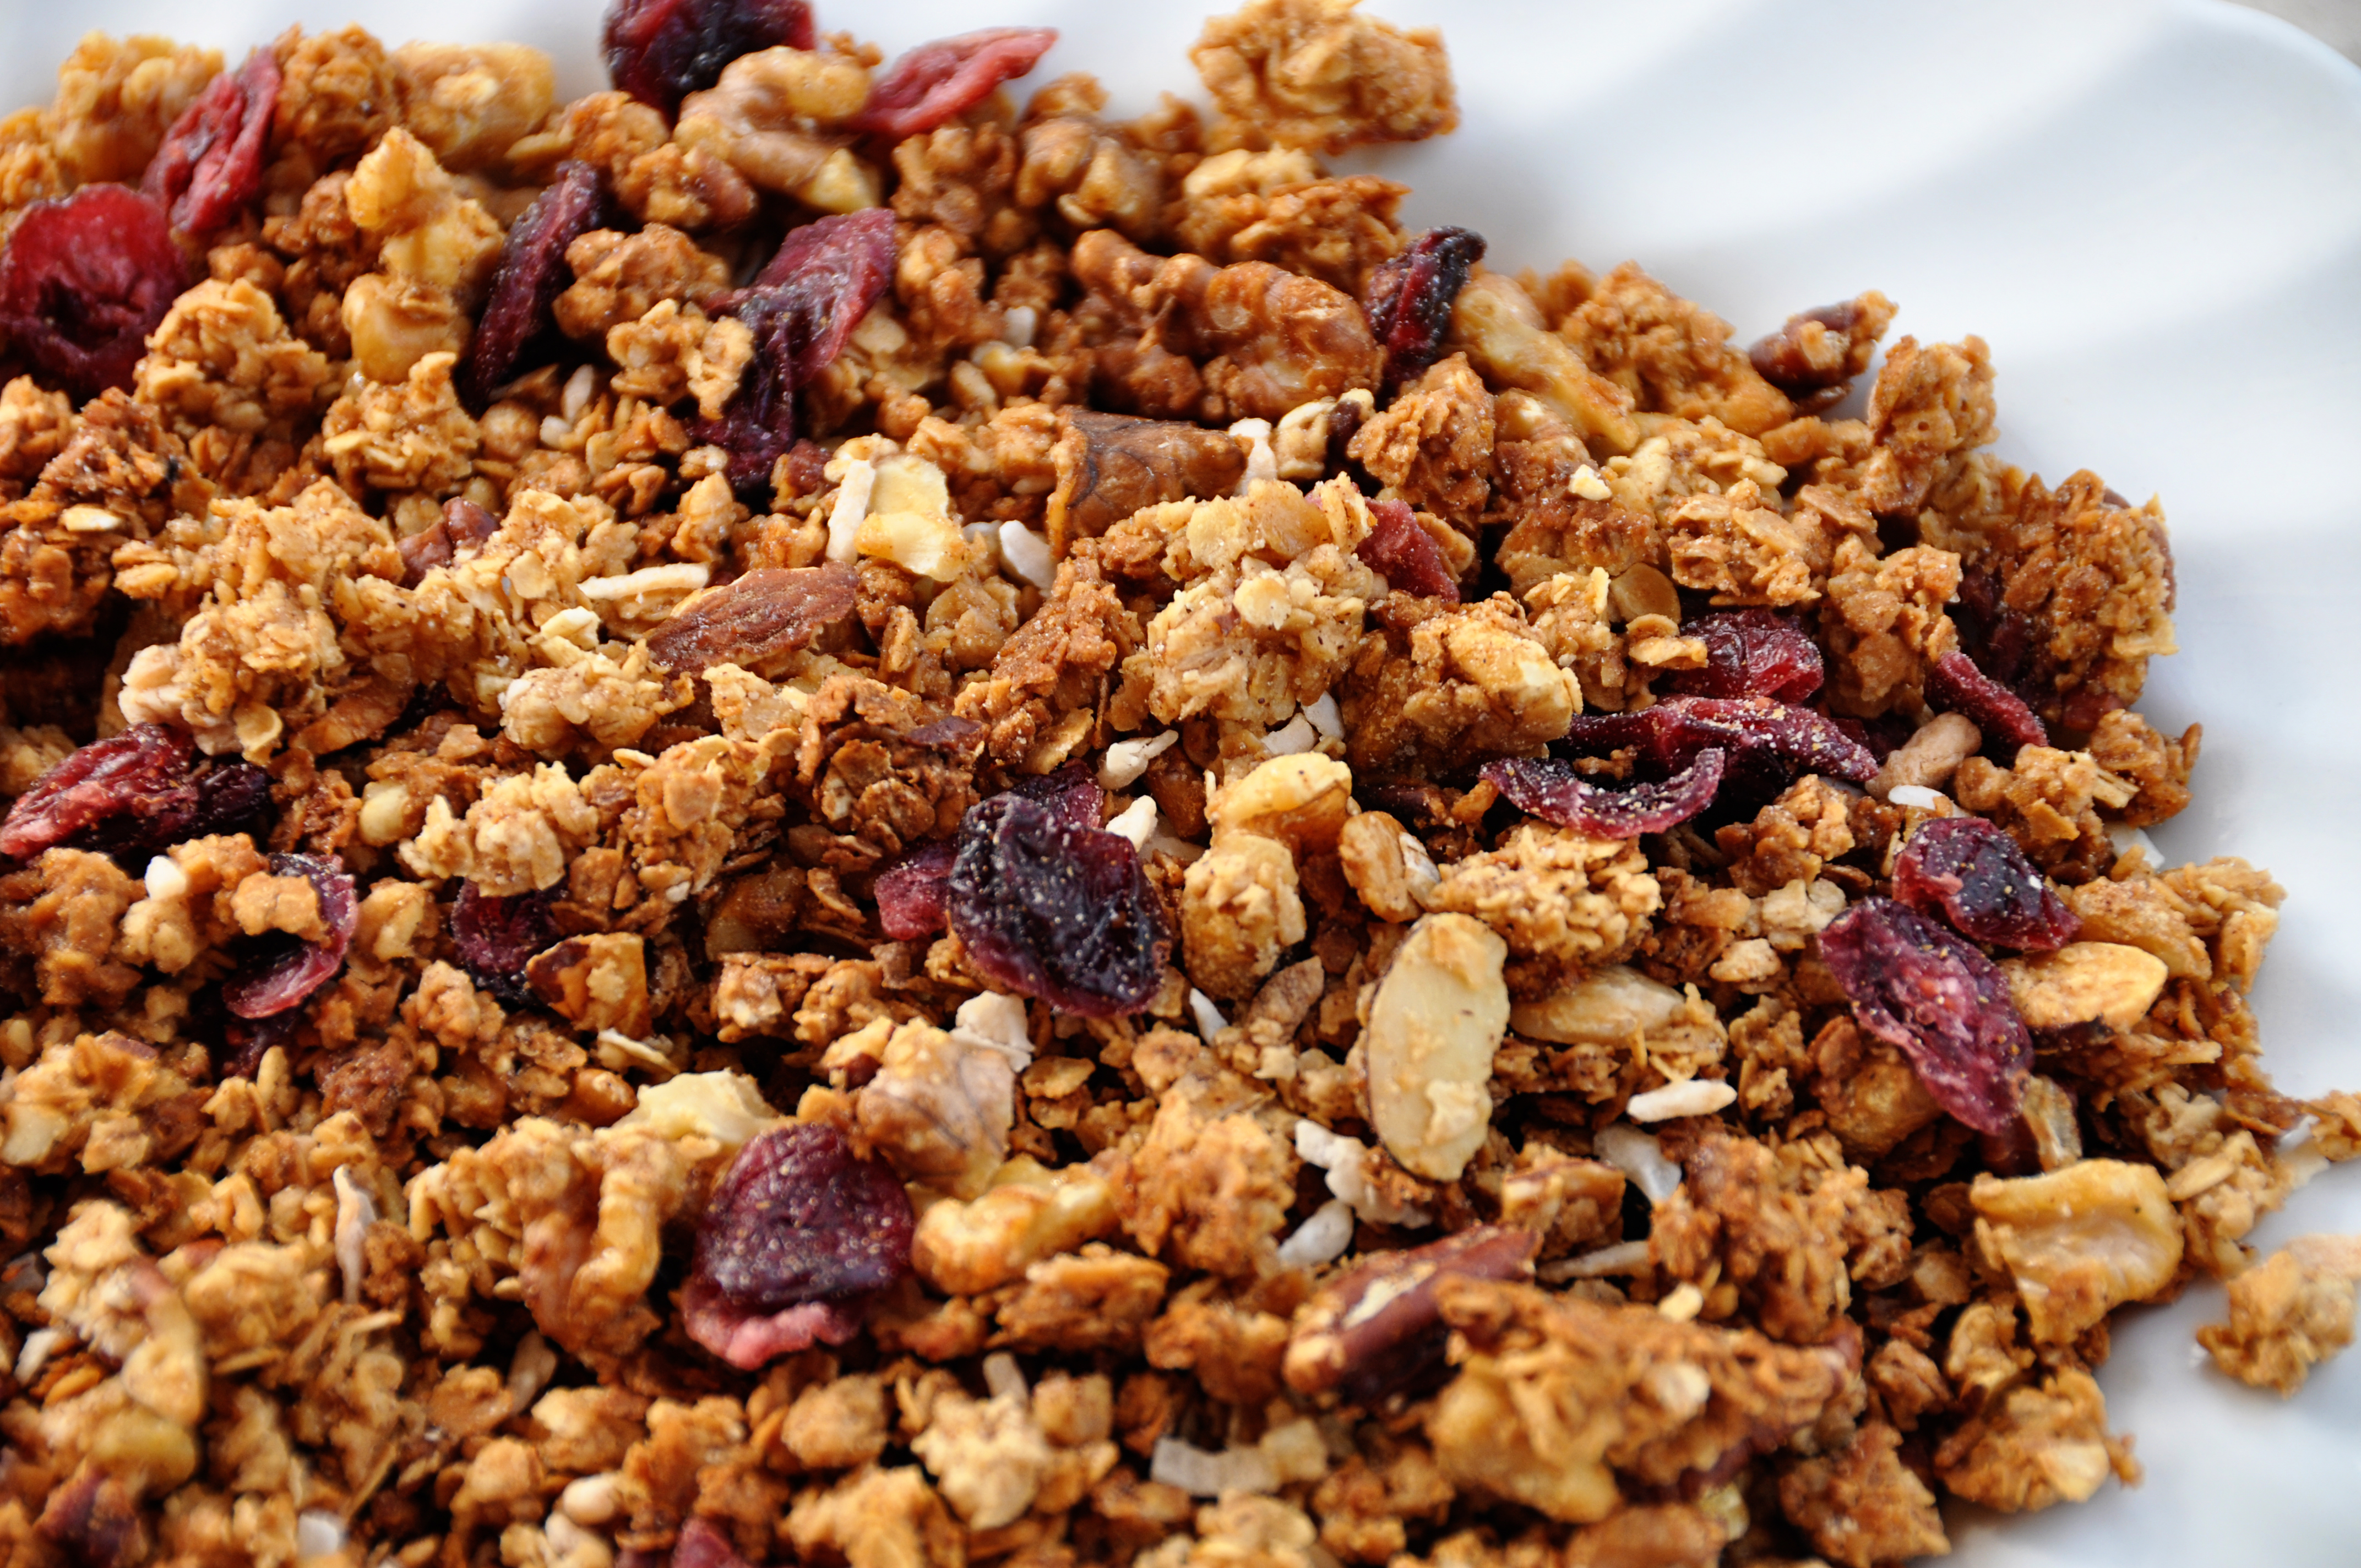 Bakery Wallpaper Hd Granola With Nuts And Dried Fruit Cluttercafe